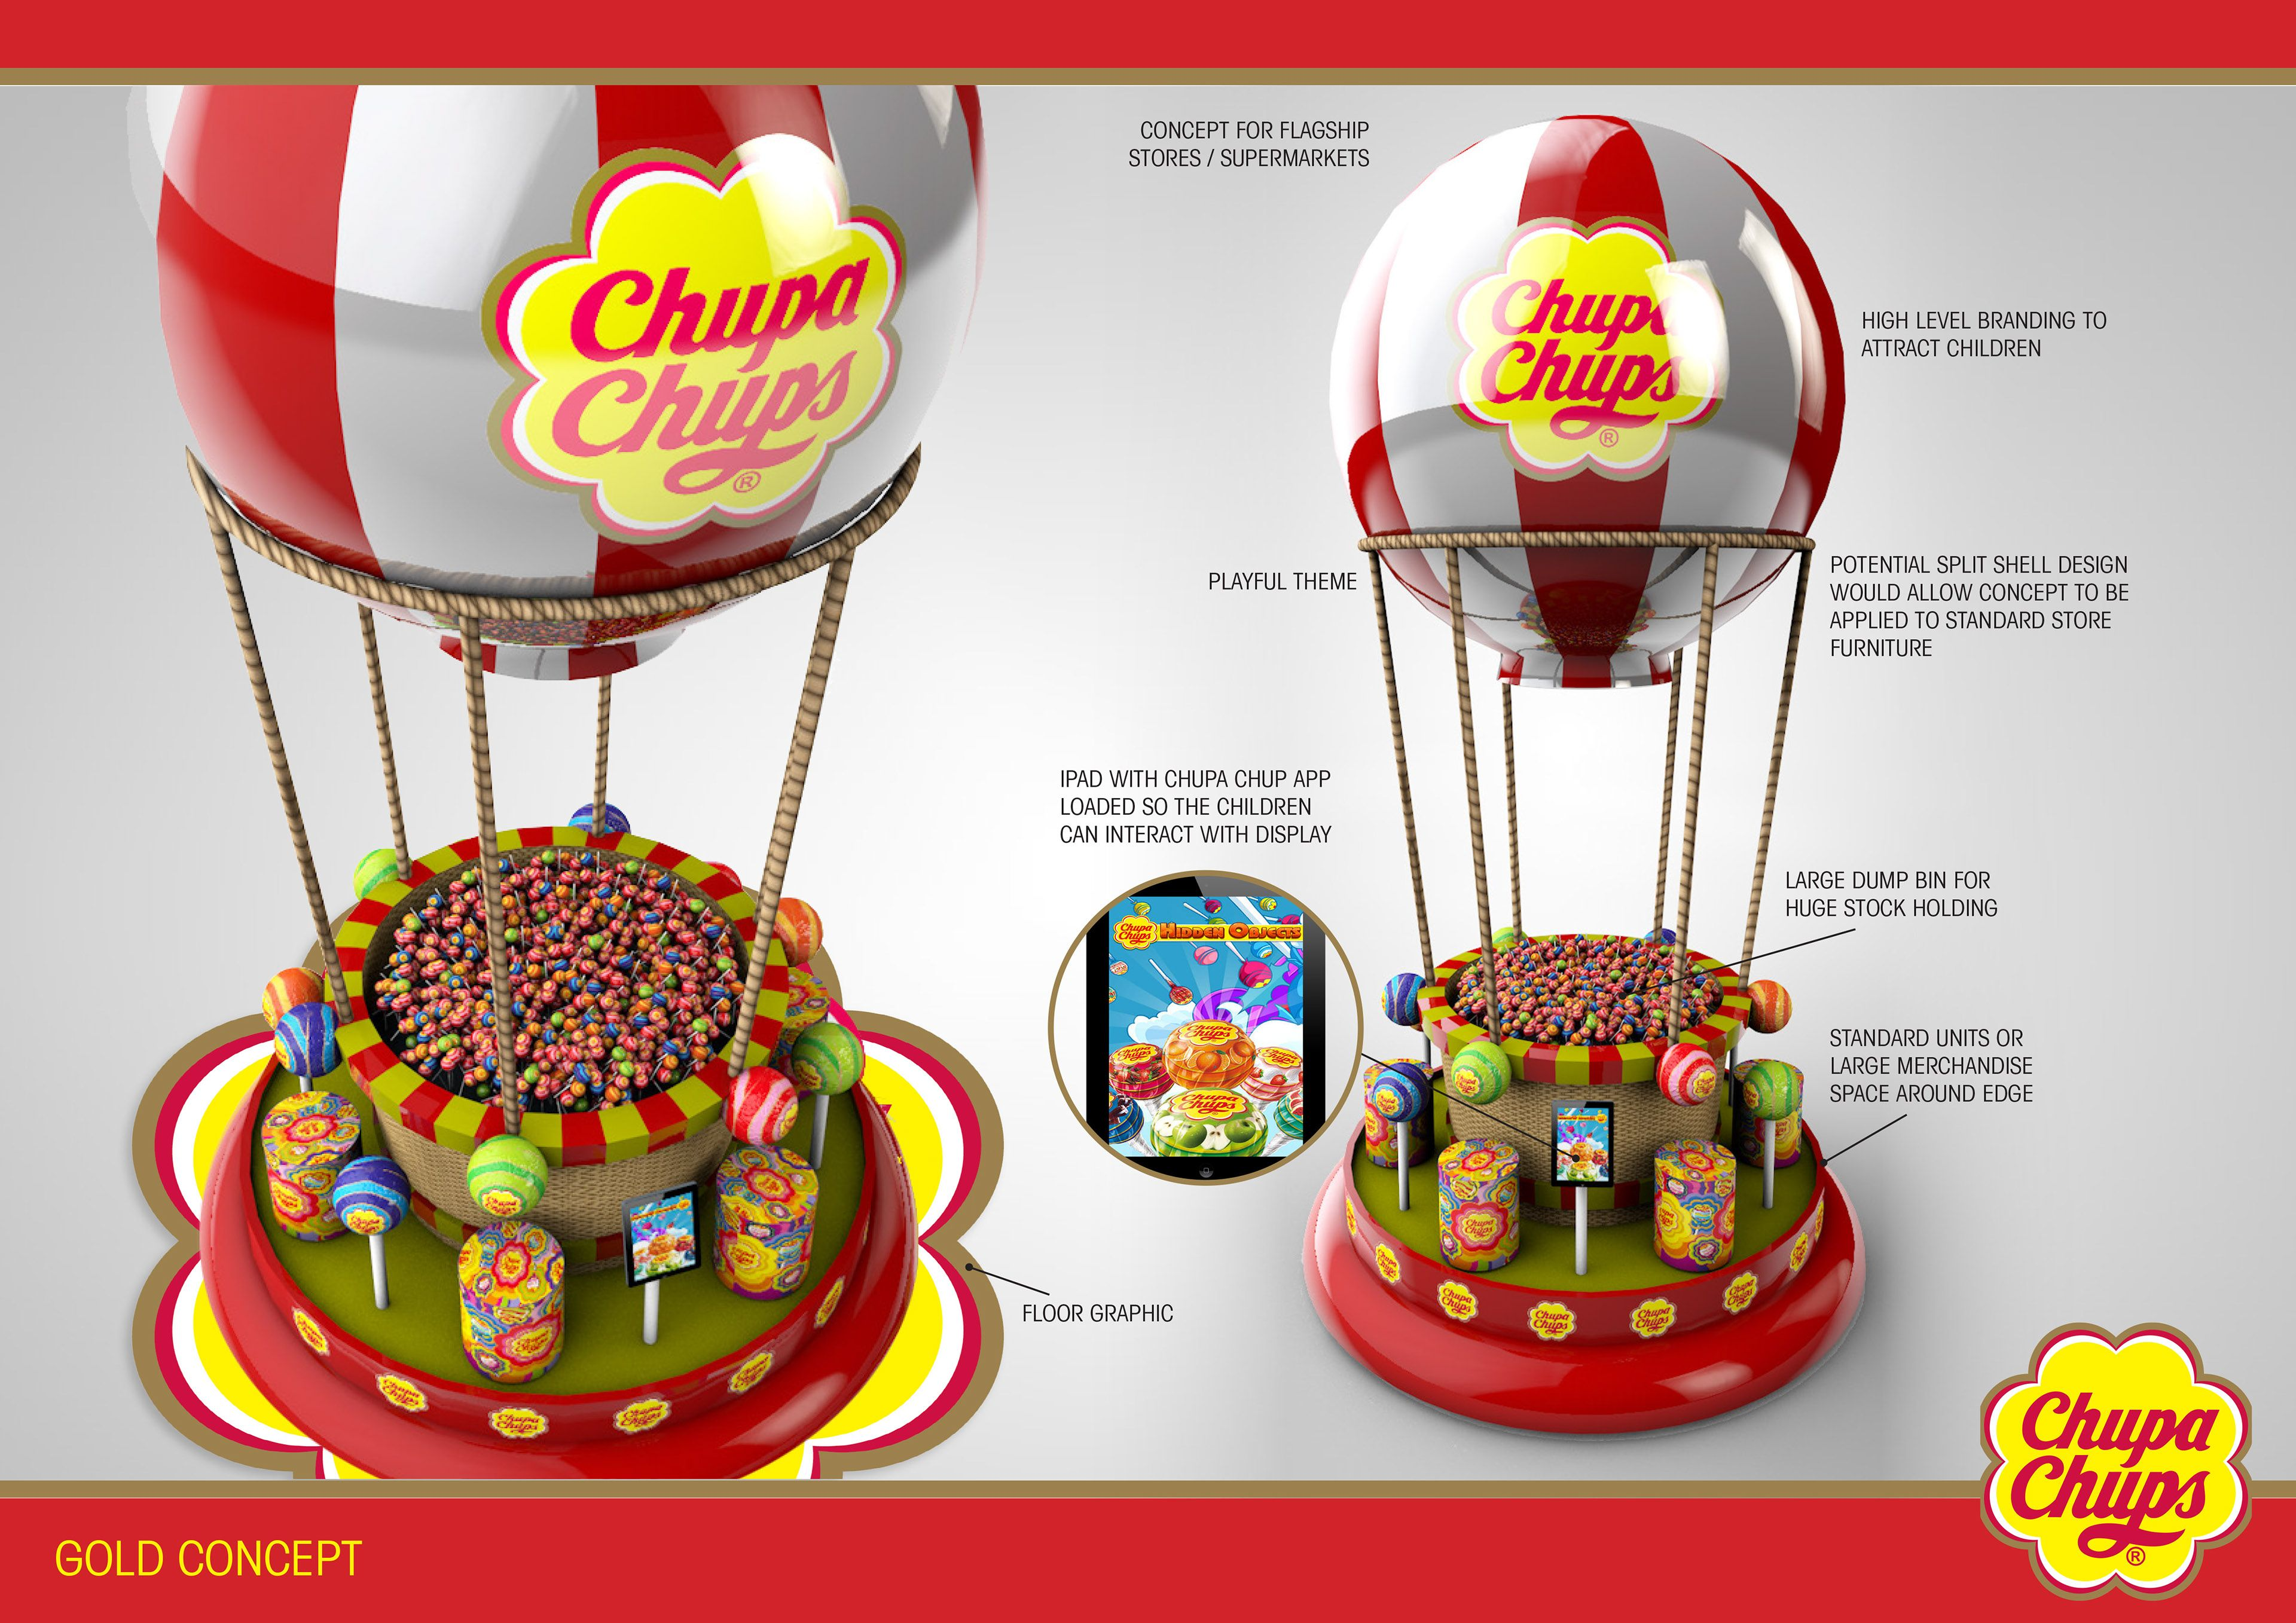 Designs Developed For Perfetti Van Melle Owners Of The Chupa Chups  # Muebles Martinez Y Riquelme